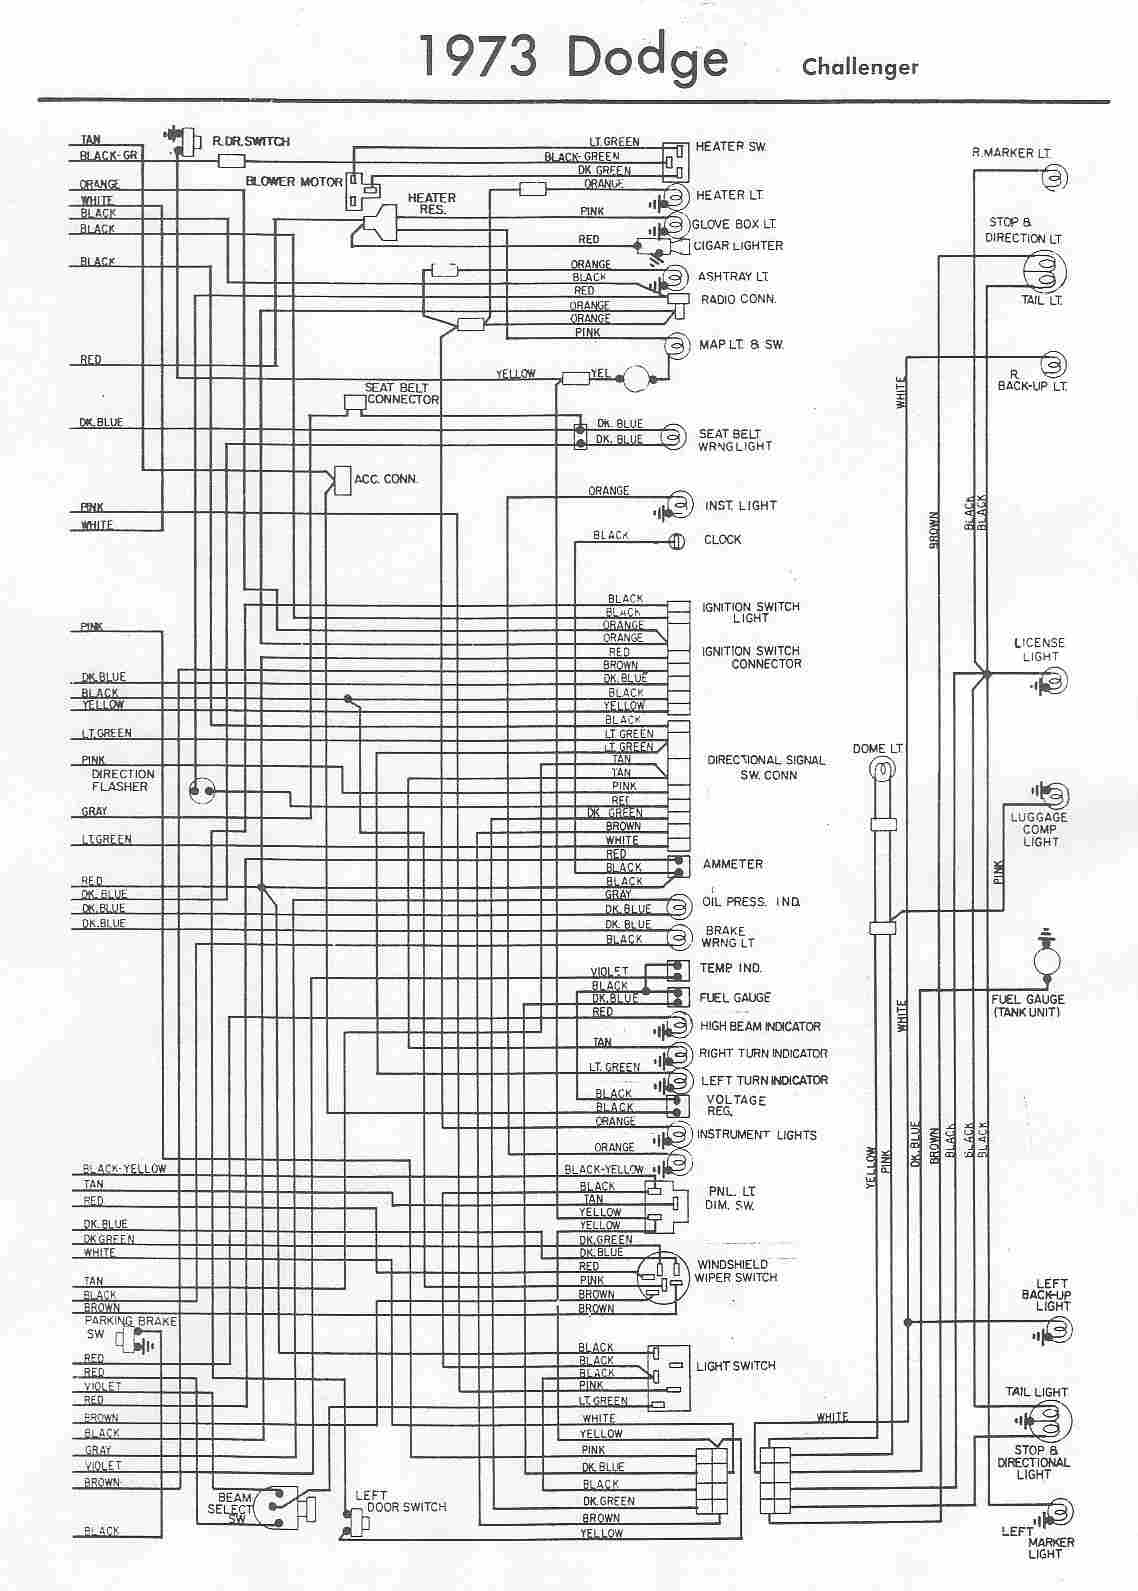 Dodge Car Manuals Wiring Diagrams Pdf Fault Codes 1991 Chevrolet 1500 Diagram Free Download